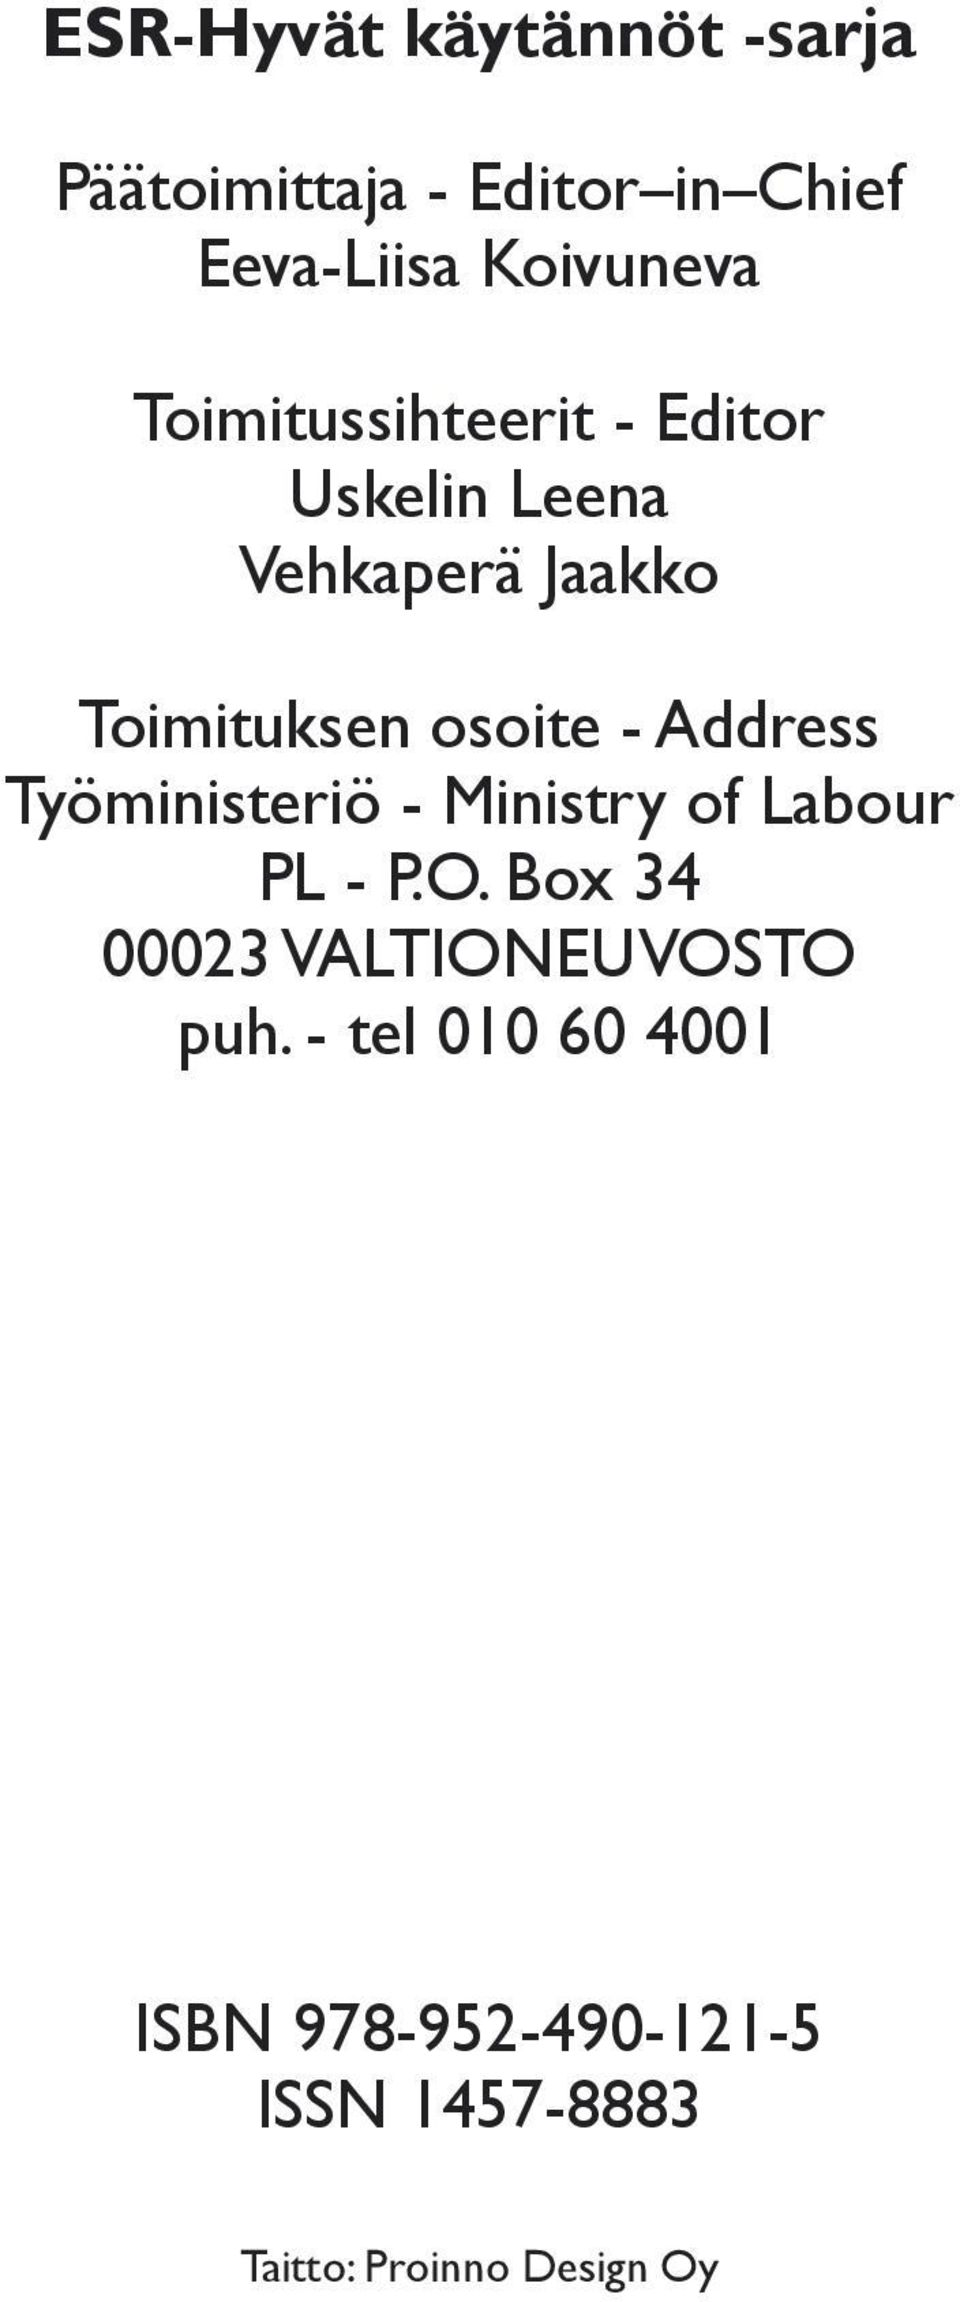 Address Työministeriö - Ministry of Labour PL - P.O.